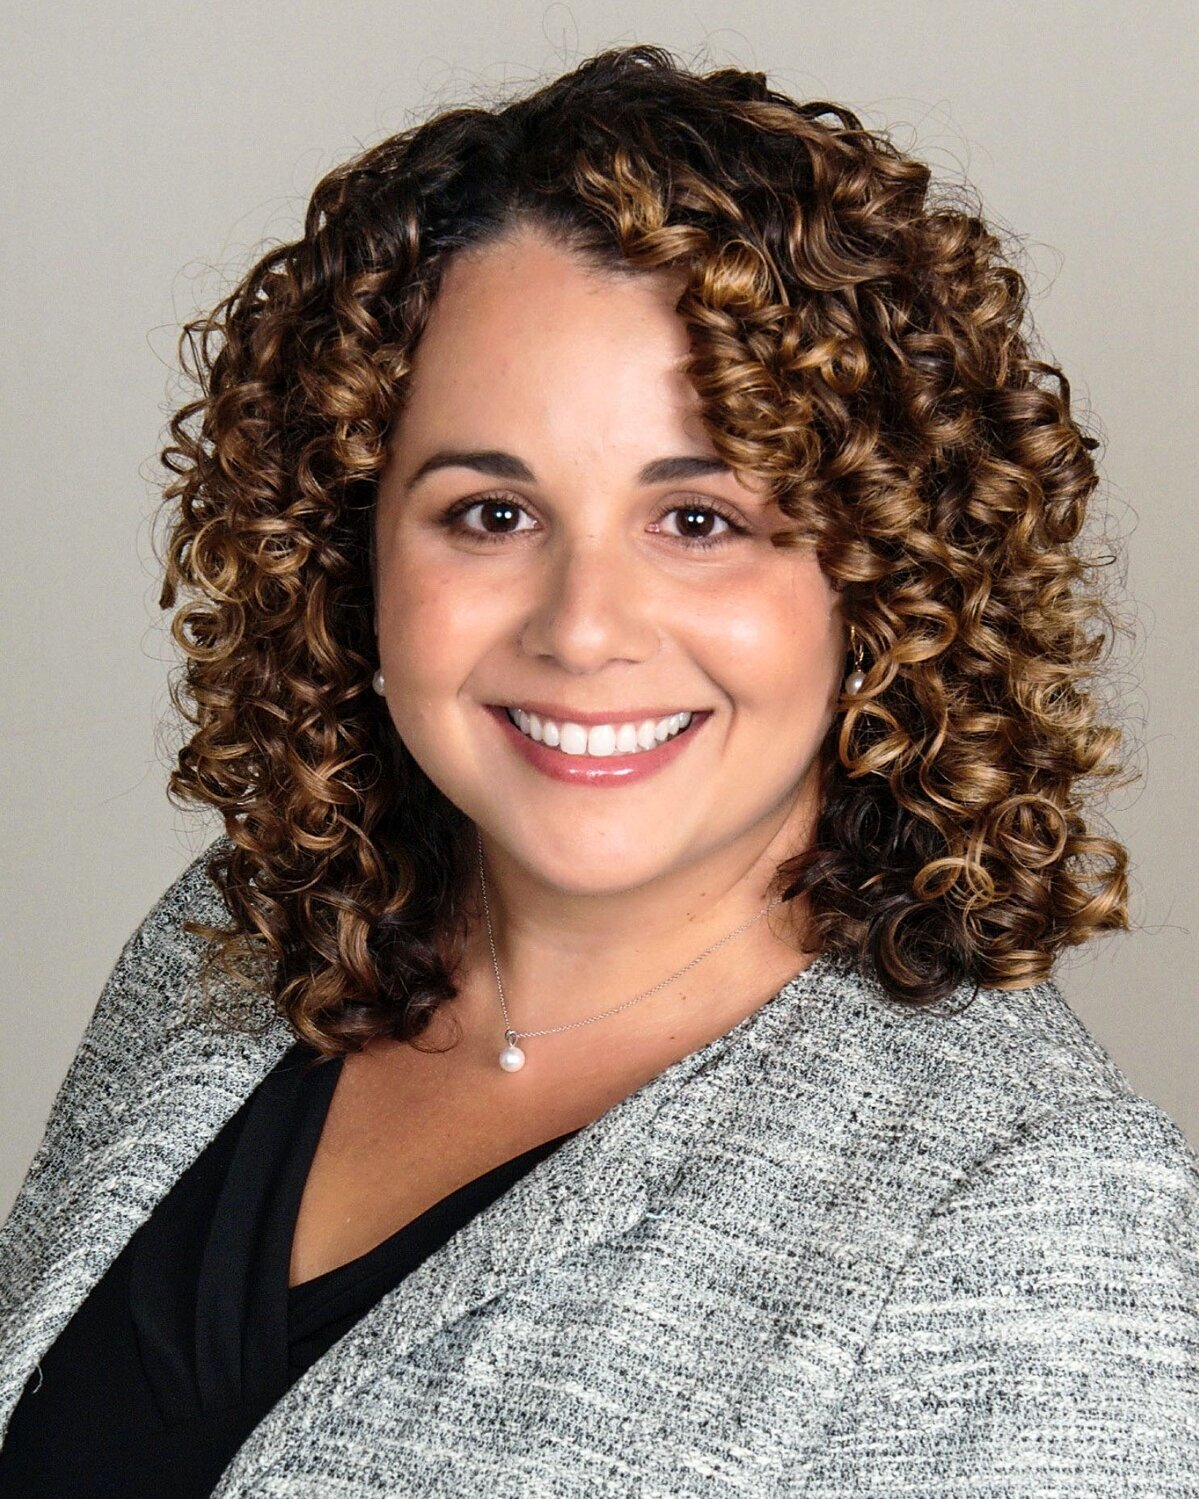 OUTSTANDING TECHNICAL ACHIEVEMENTKarien J.Rodríguez, Ph.D. - Research Technical LeaderLife Science, Global Research and EngineeringKimberly-Clark Corporation